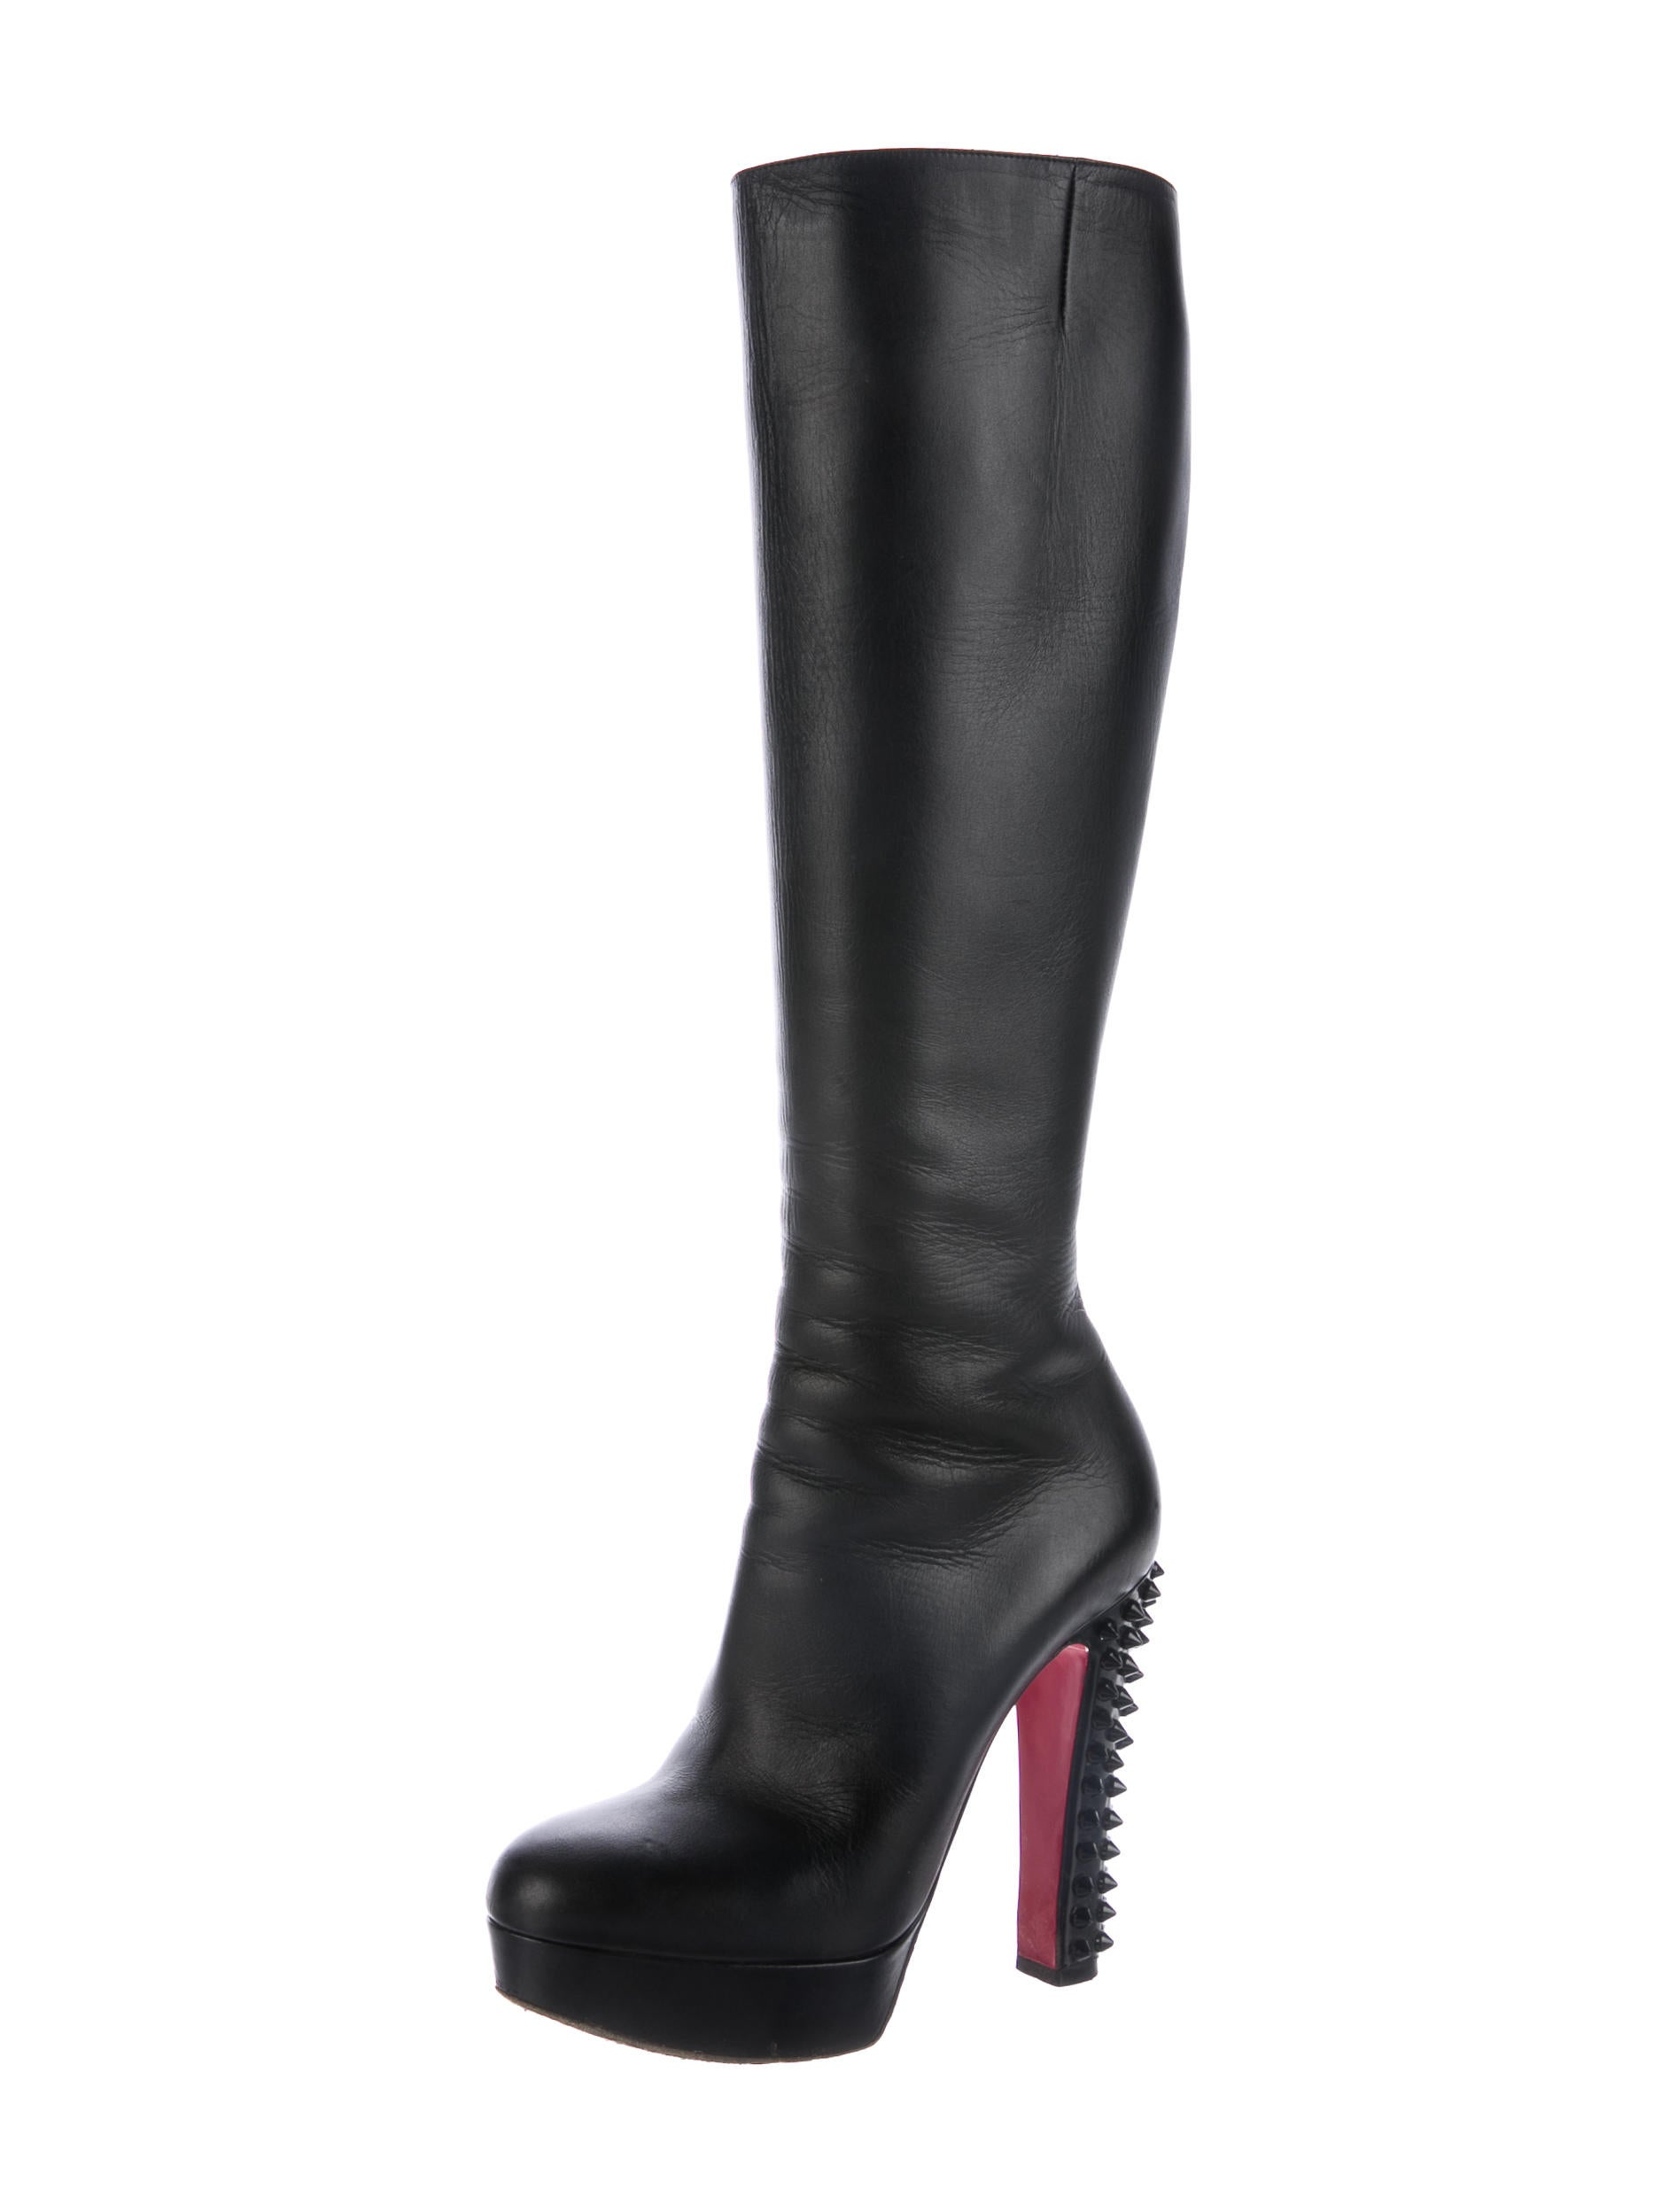 Knee High Boots Introduction. Are you looking for the attractive Knee high Boots. The knee high boots UK are the perfect choice to complement your pretty erawtoir.ga you are shopping for knee high boots this festive season, .